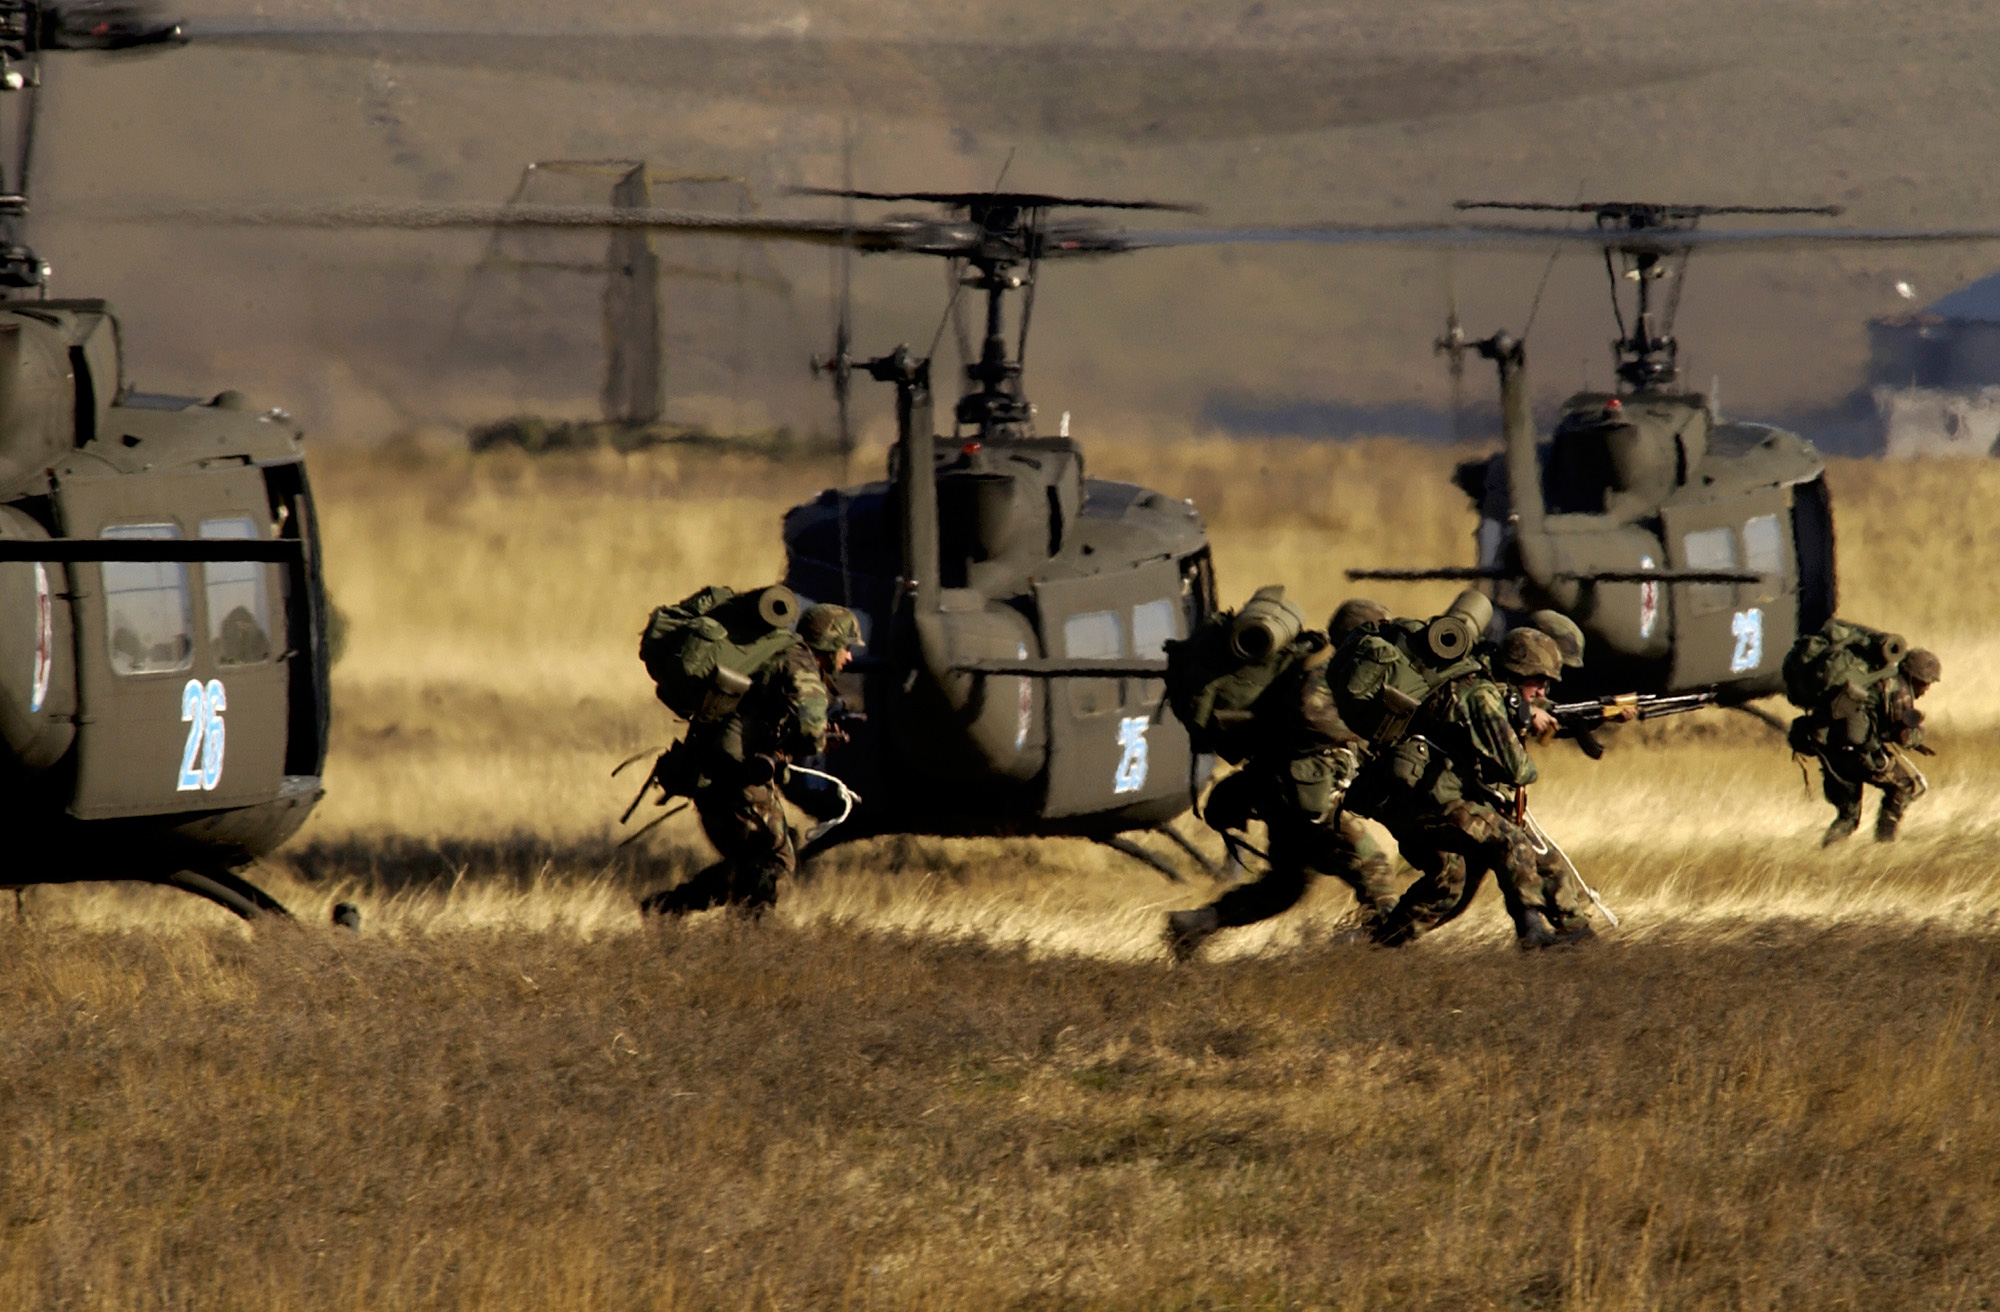 Special Forces Iphone Wallpaper Bell Uh 1 Iroquois Full Hd Wallpaper And Background Image